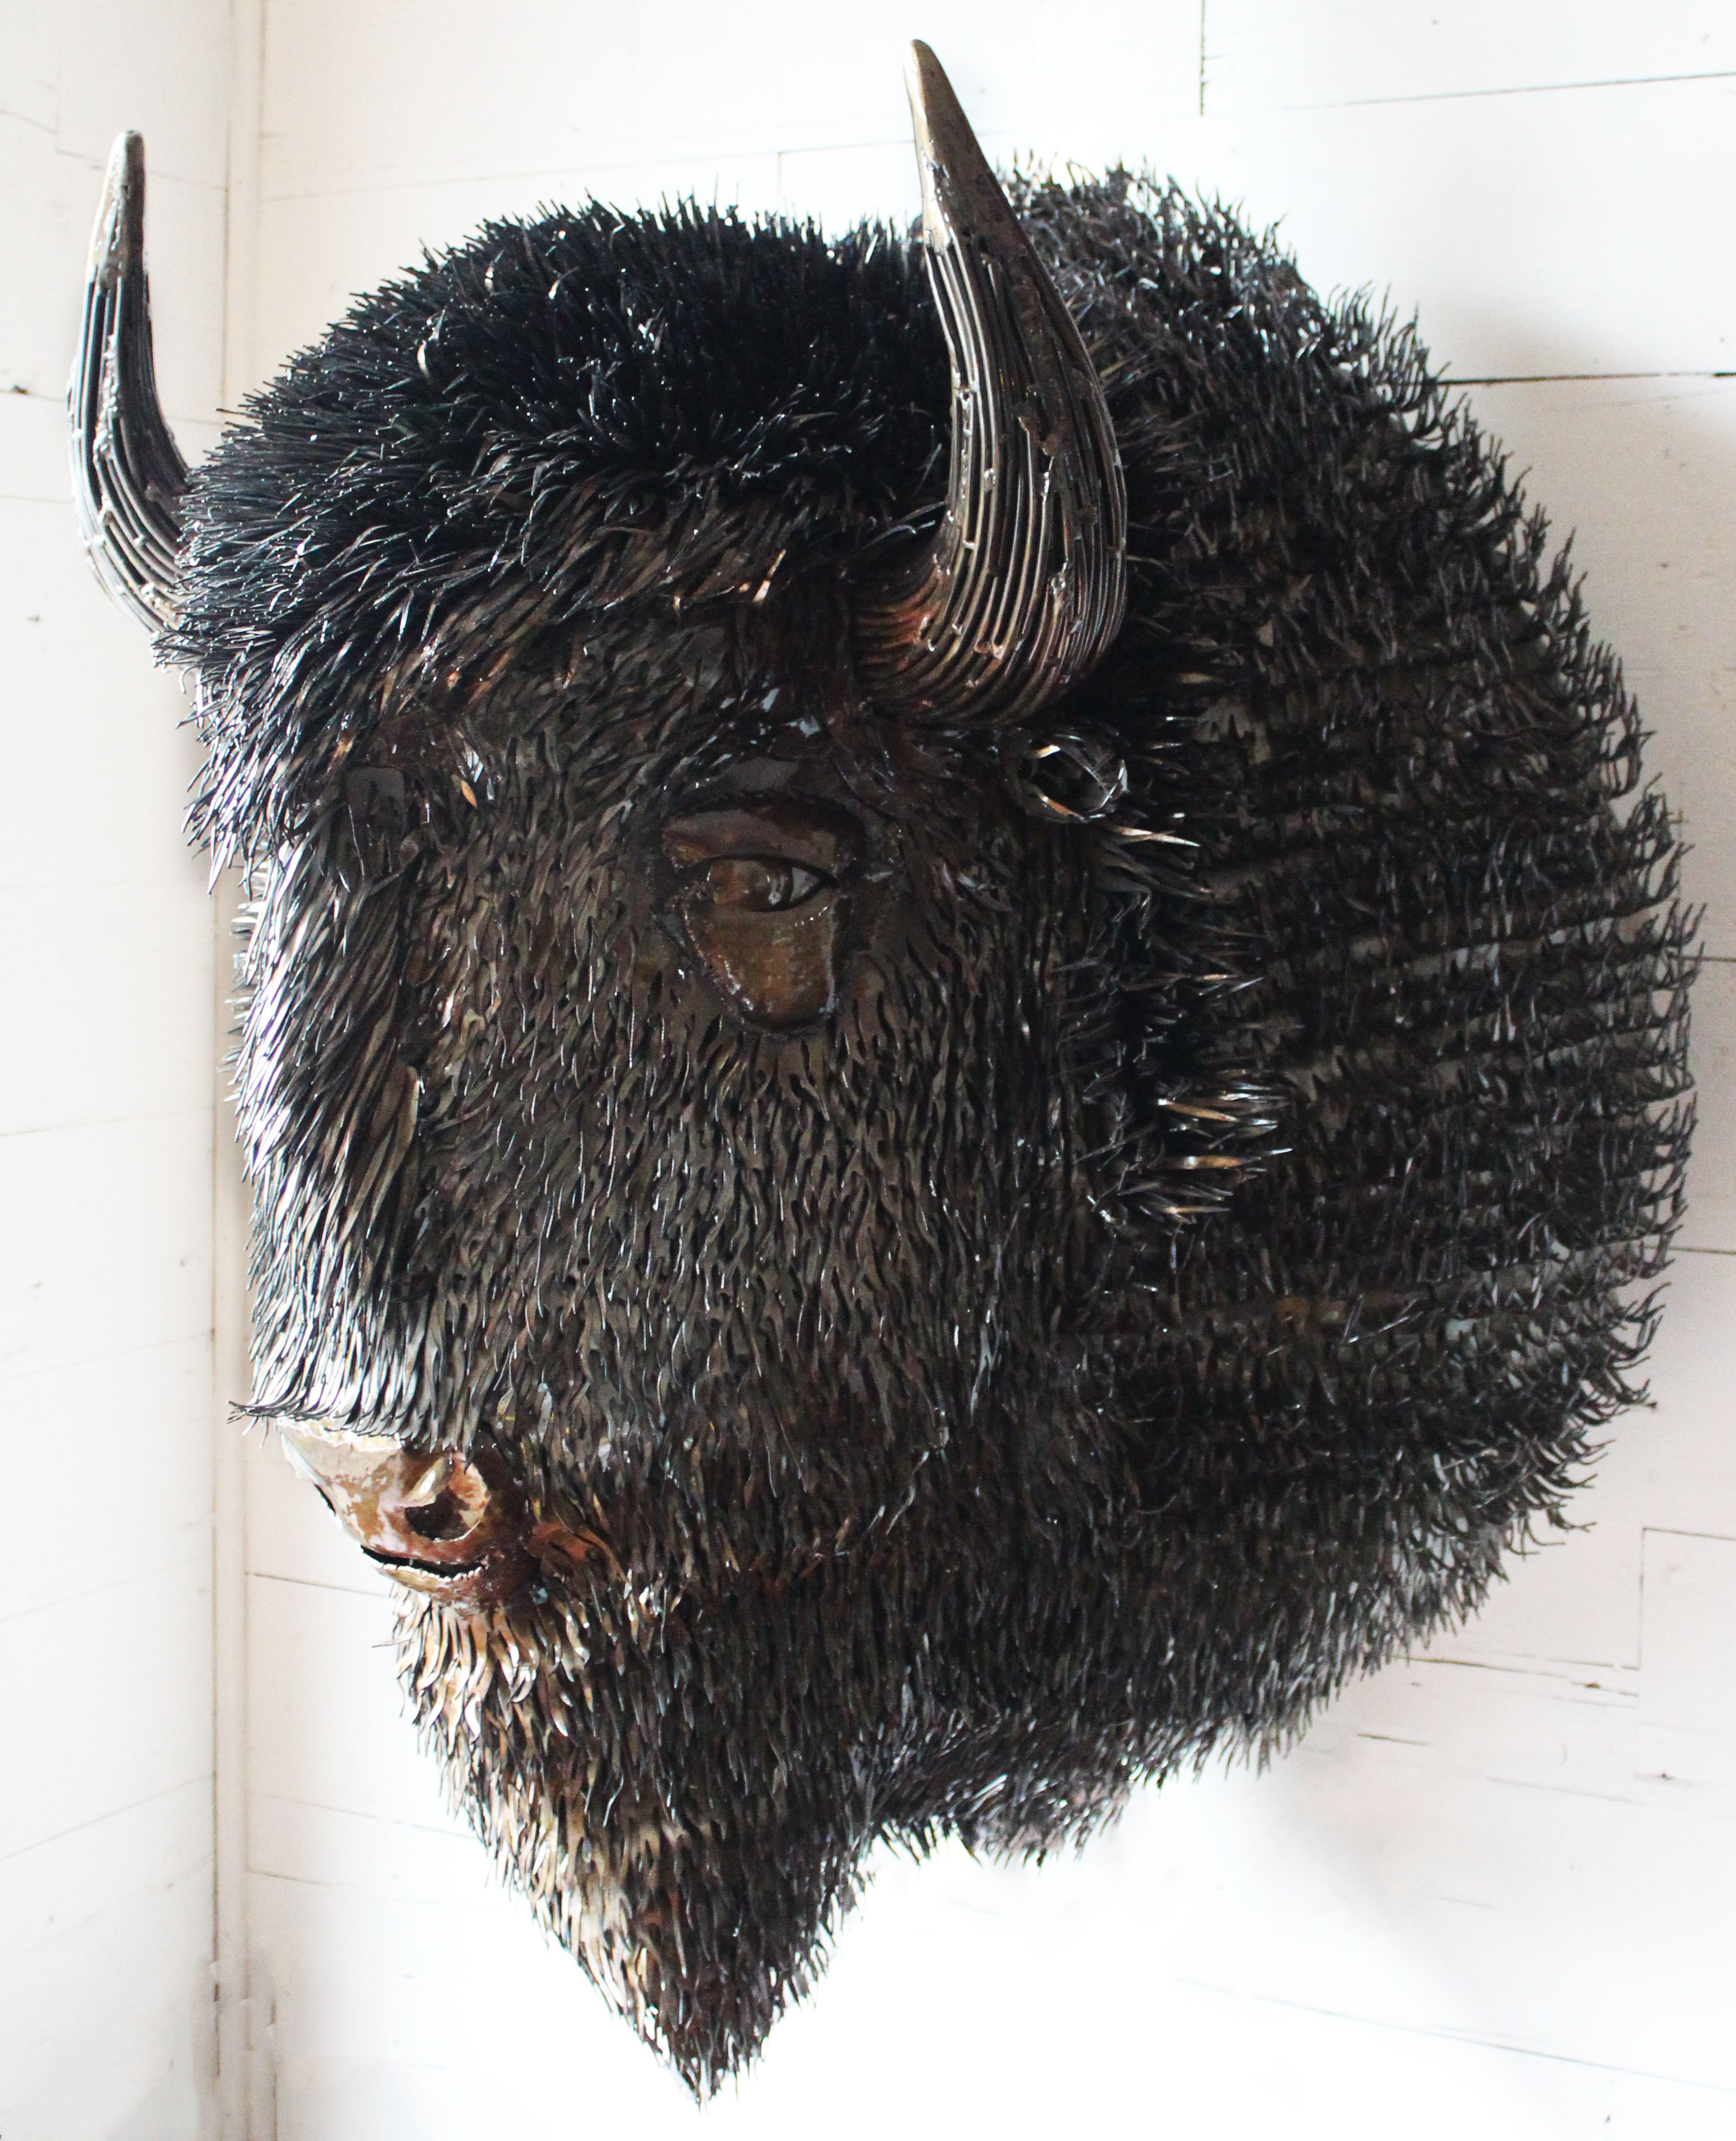 Life Size Bison Should Mount